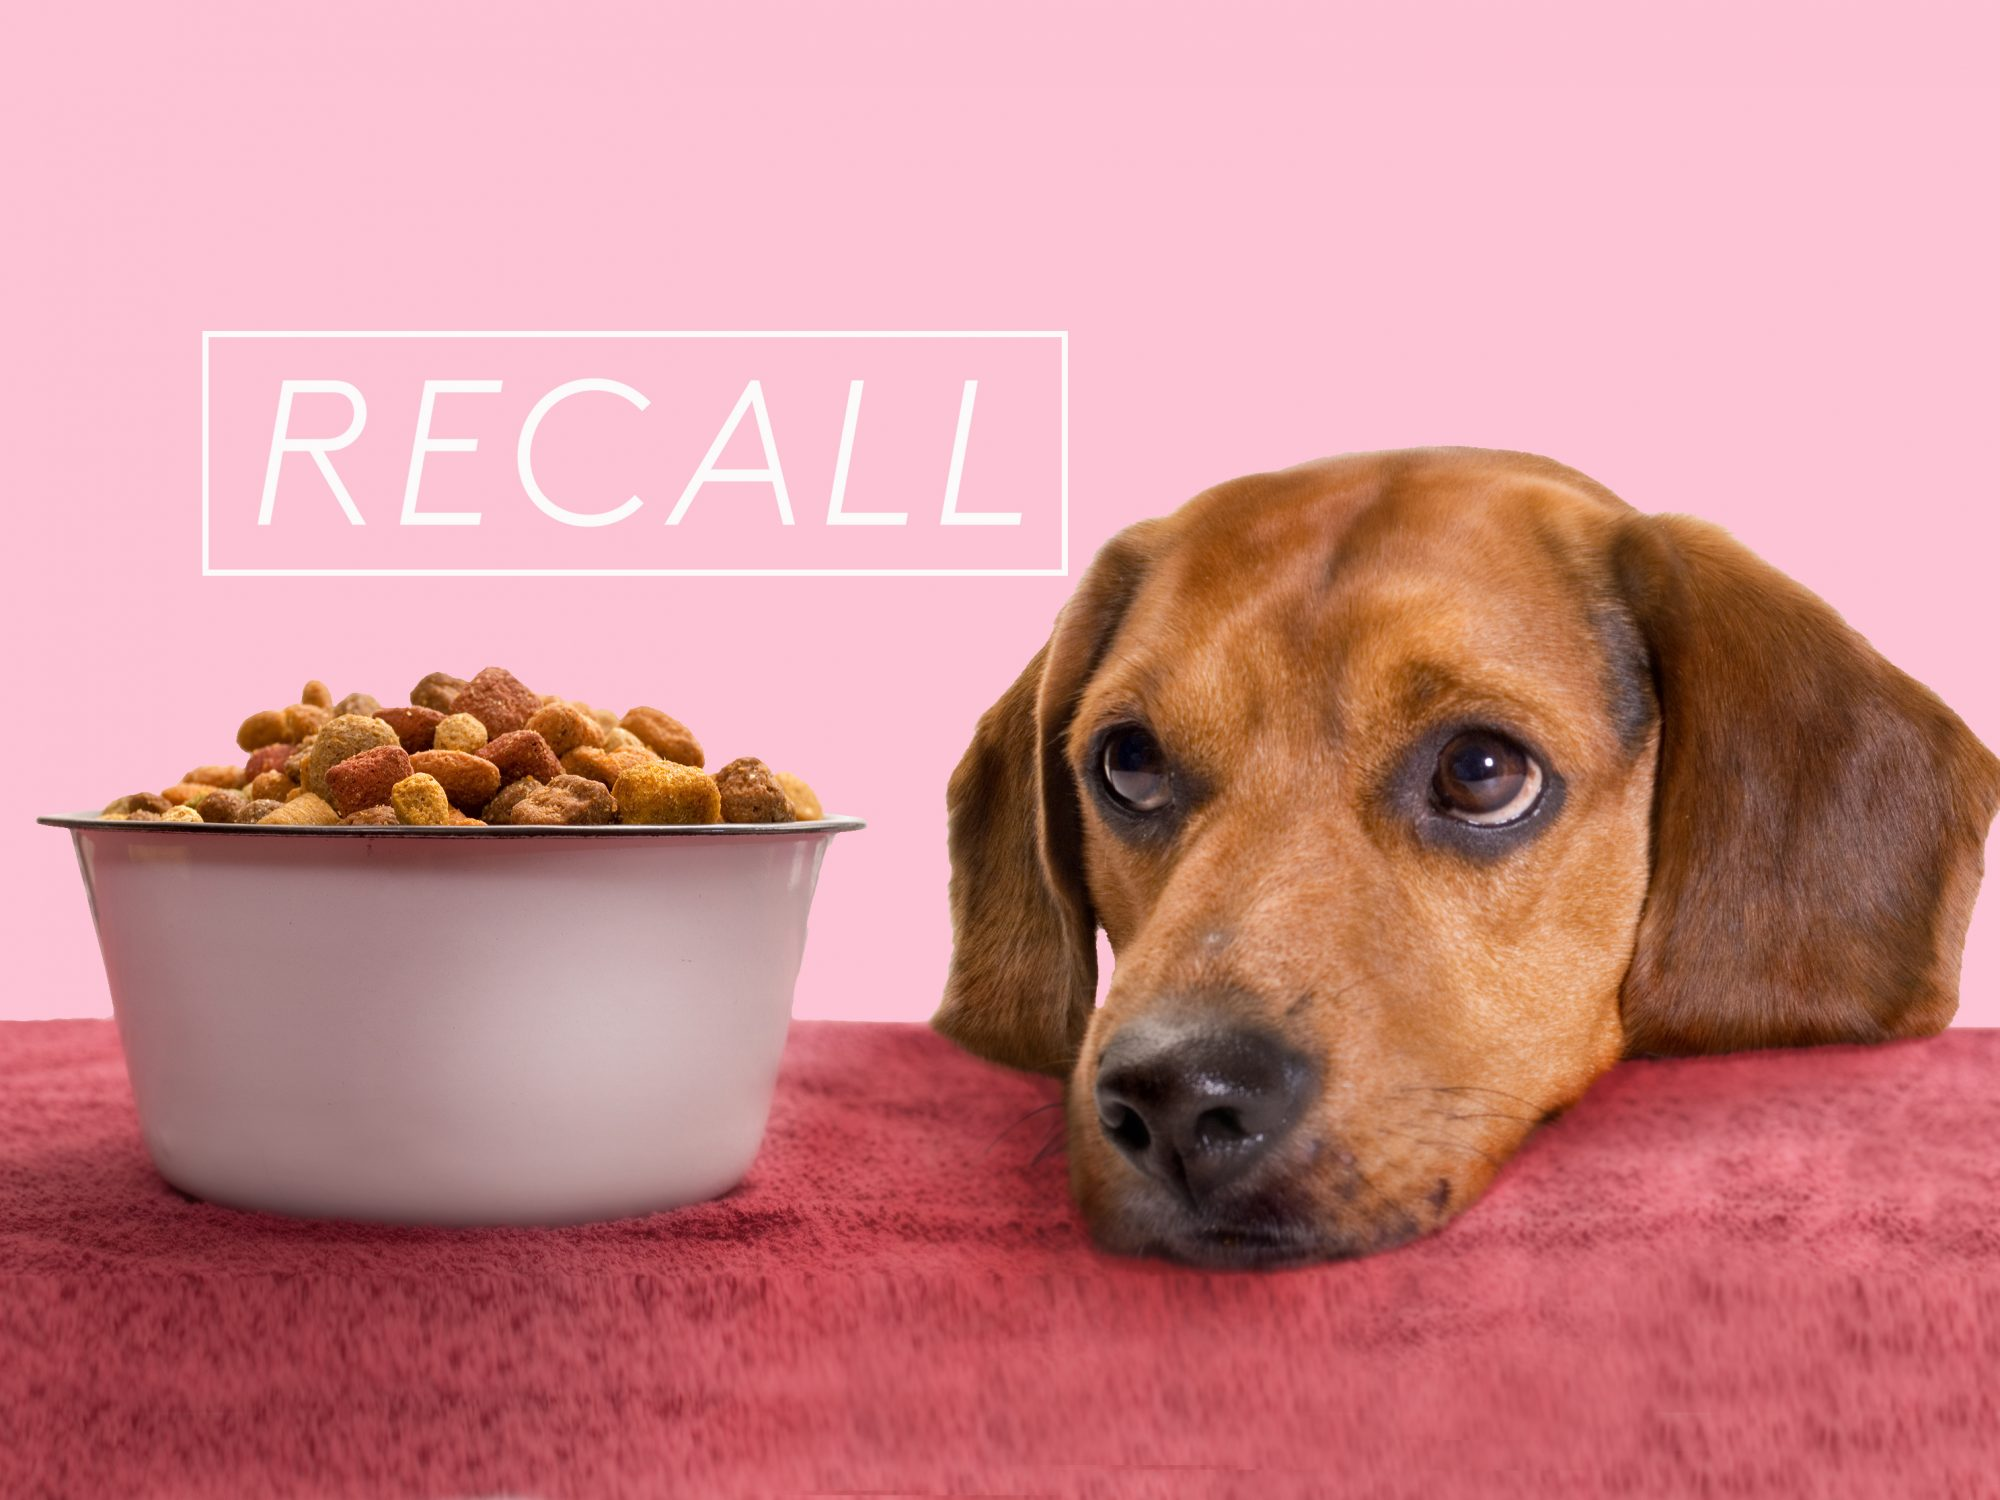 Freshpet Recalling Small Amount of Dog Food, Including Some Accidentally Sent To Stores